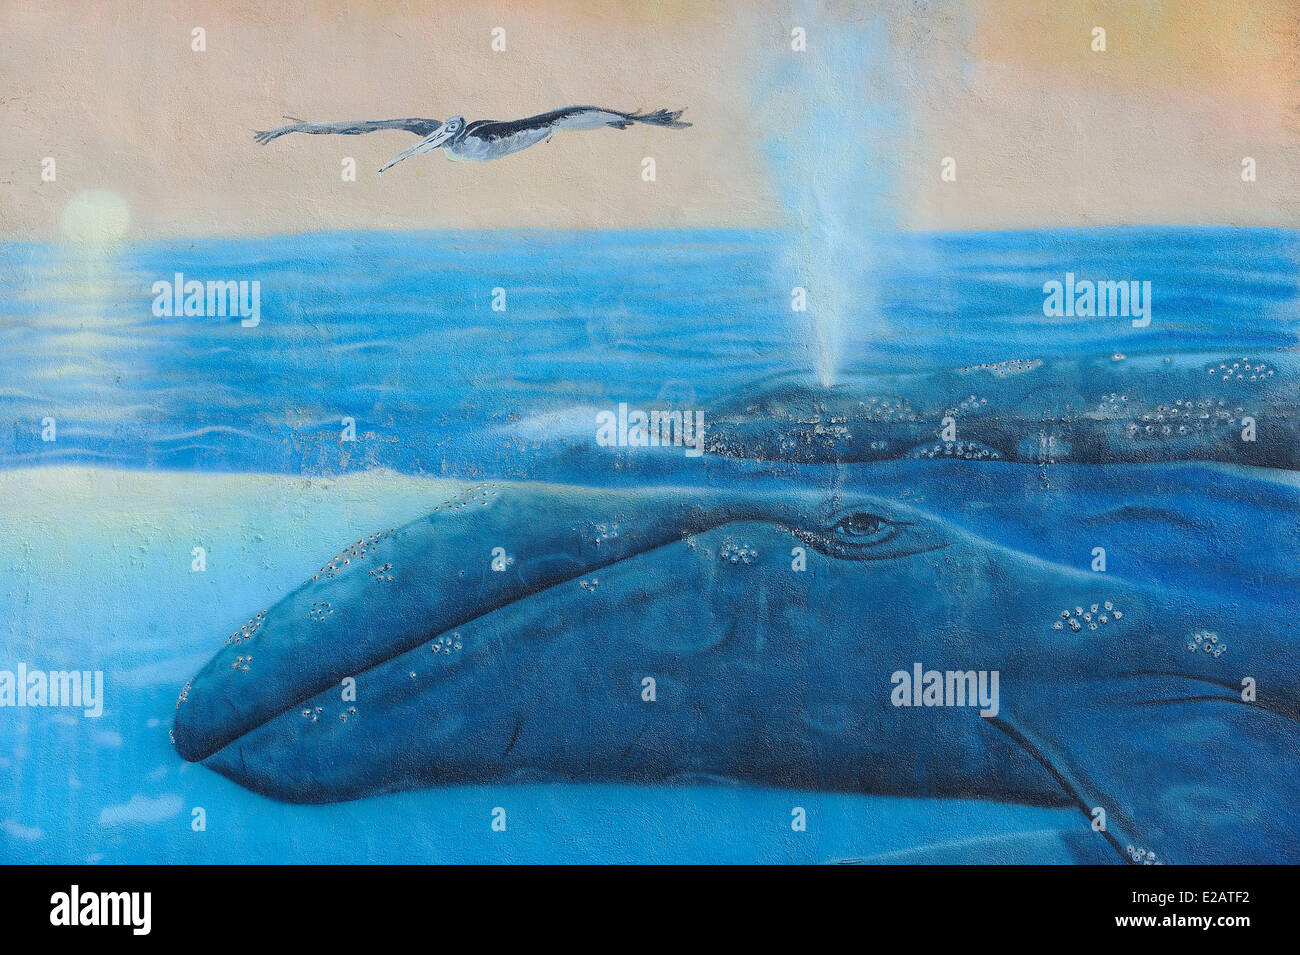 Mexico, Baja California Sur State, La Paz, Mural representing a whale and a brown pelican - Stock Image